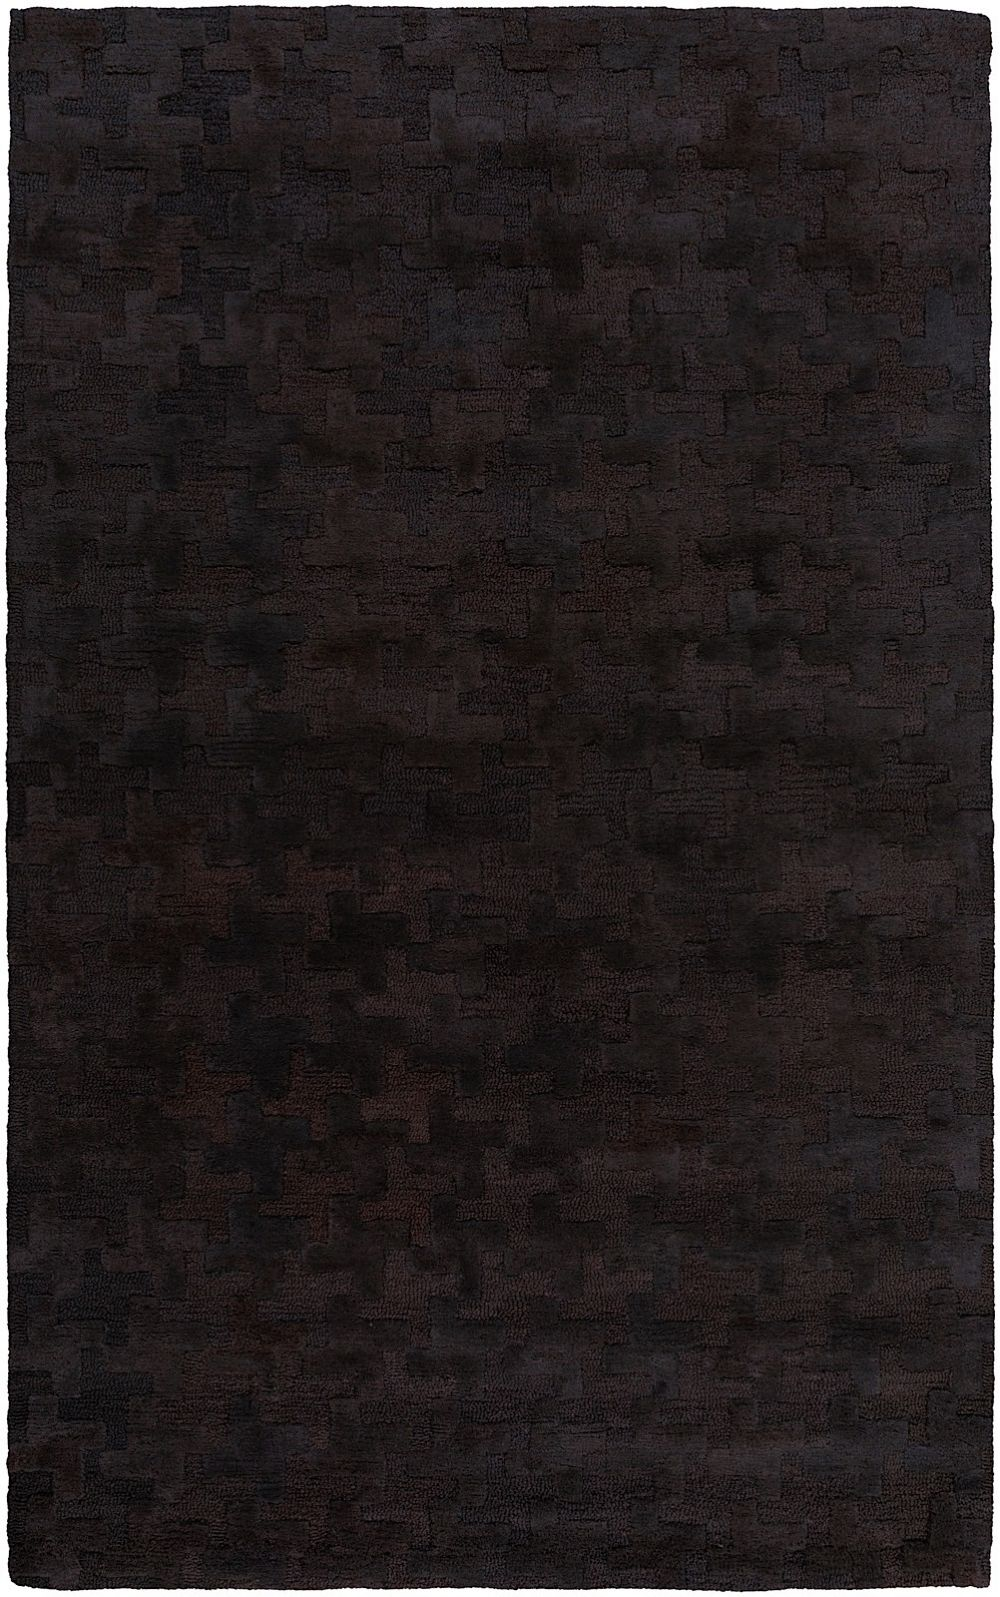 surya juliette solid/striped area rug collection